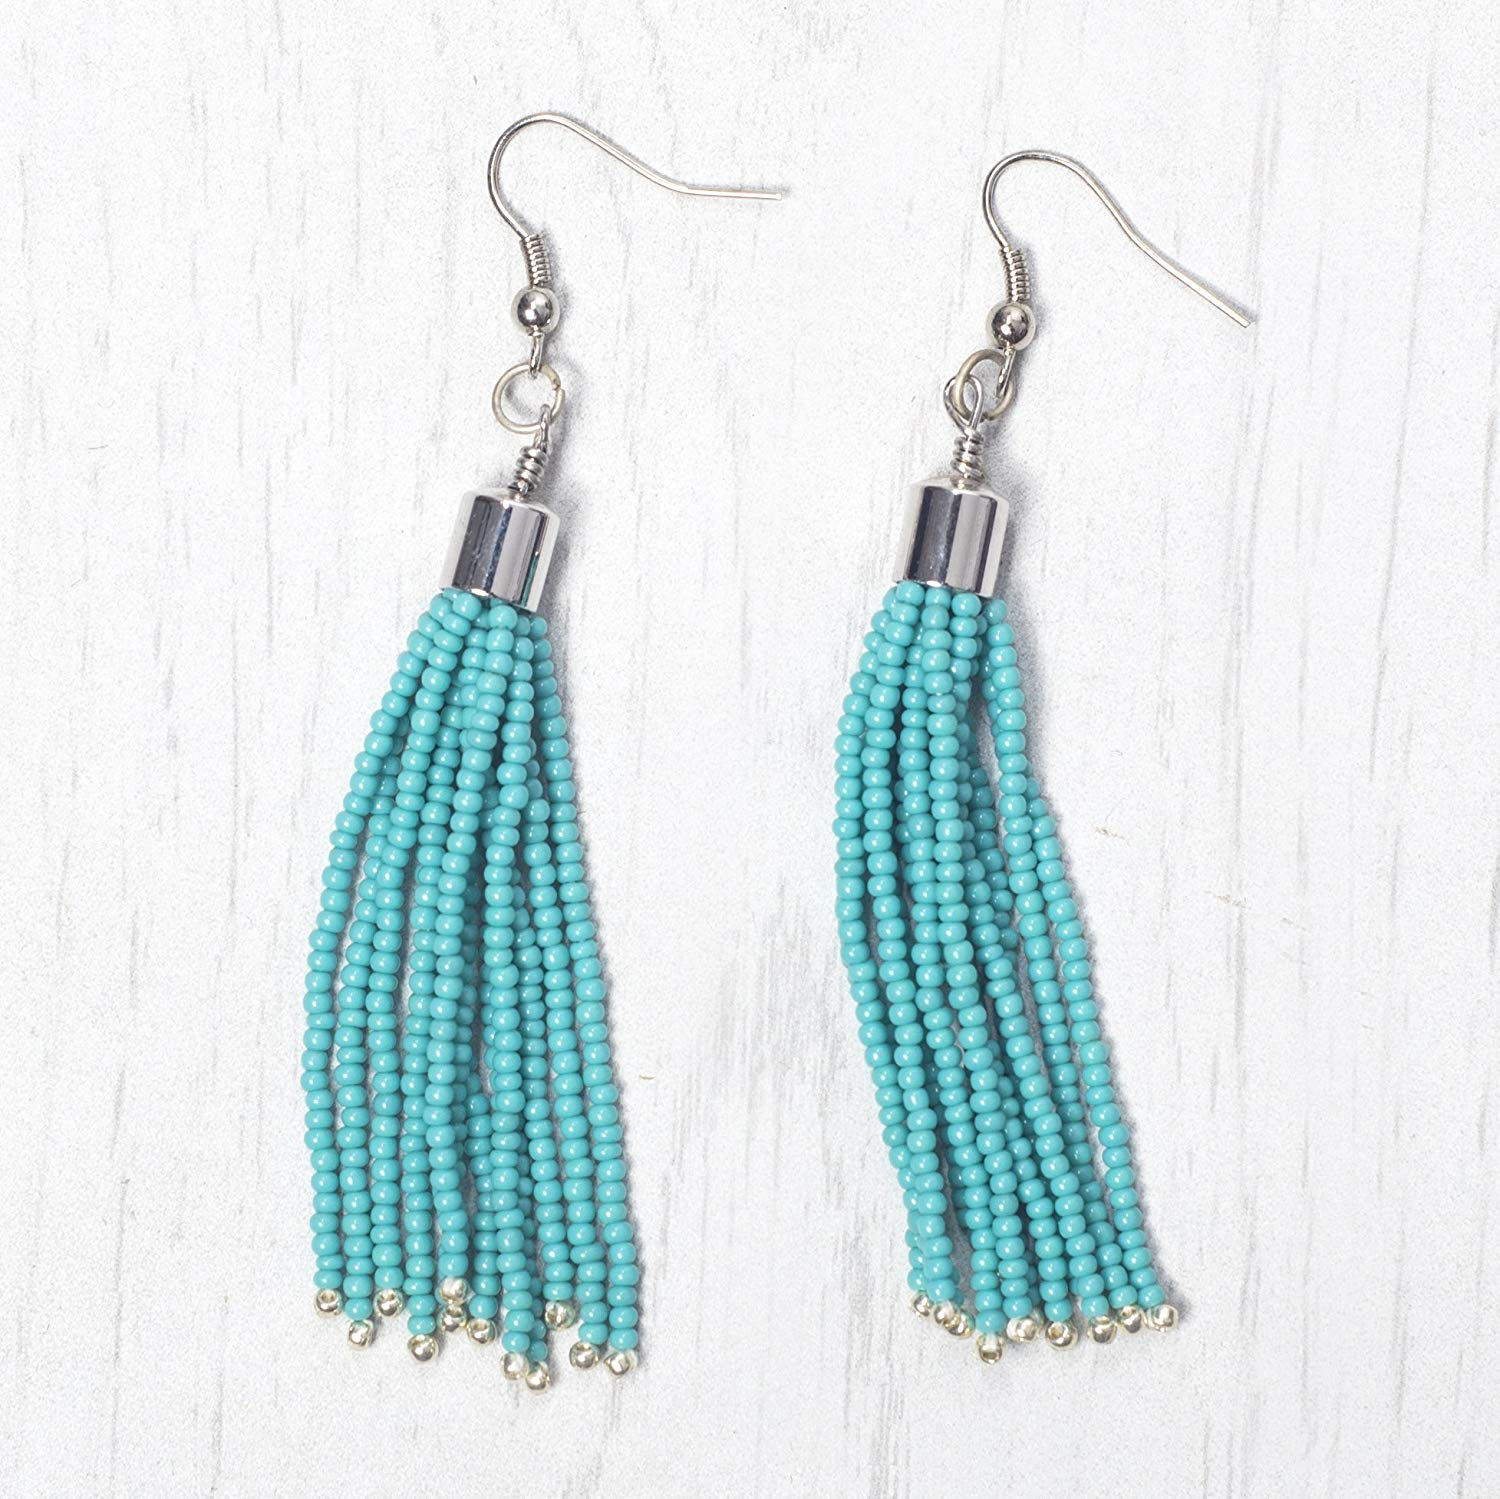 Turquoise with accent of Galvanised Silver Seed Beaded Tassel Earring with Rhodium Plated Brass Findings